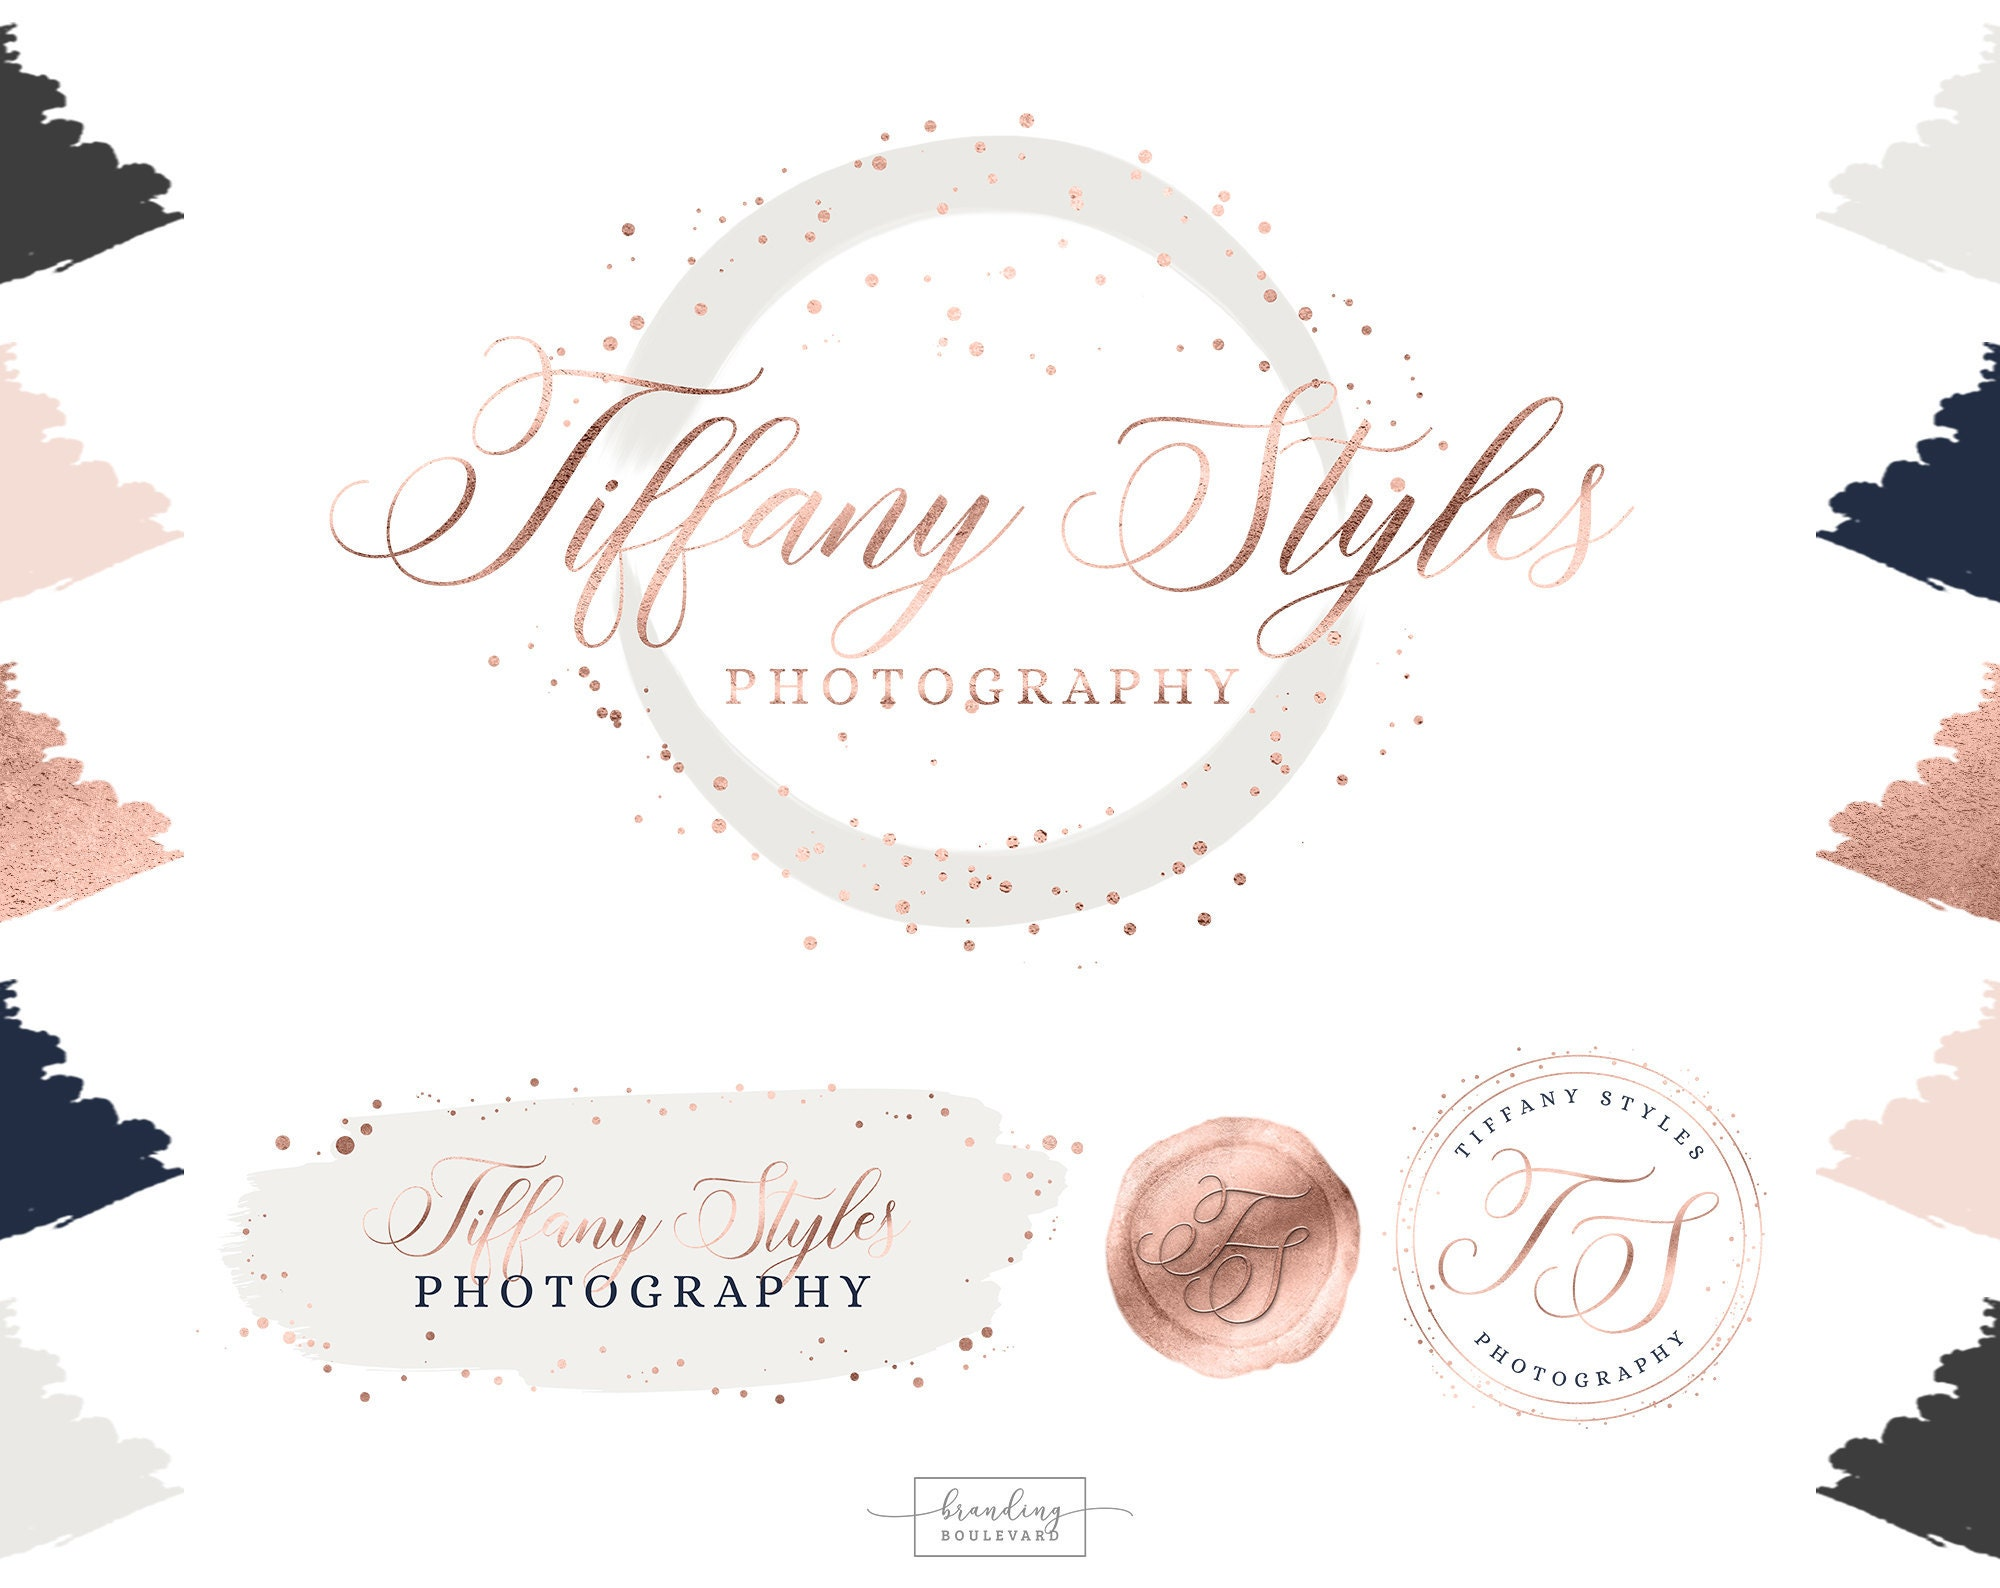 Rose Gold Blush Pink Light Gray and Navy Blue Company Logo - With Brush Strokes, and Wax Seal Look Logo